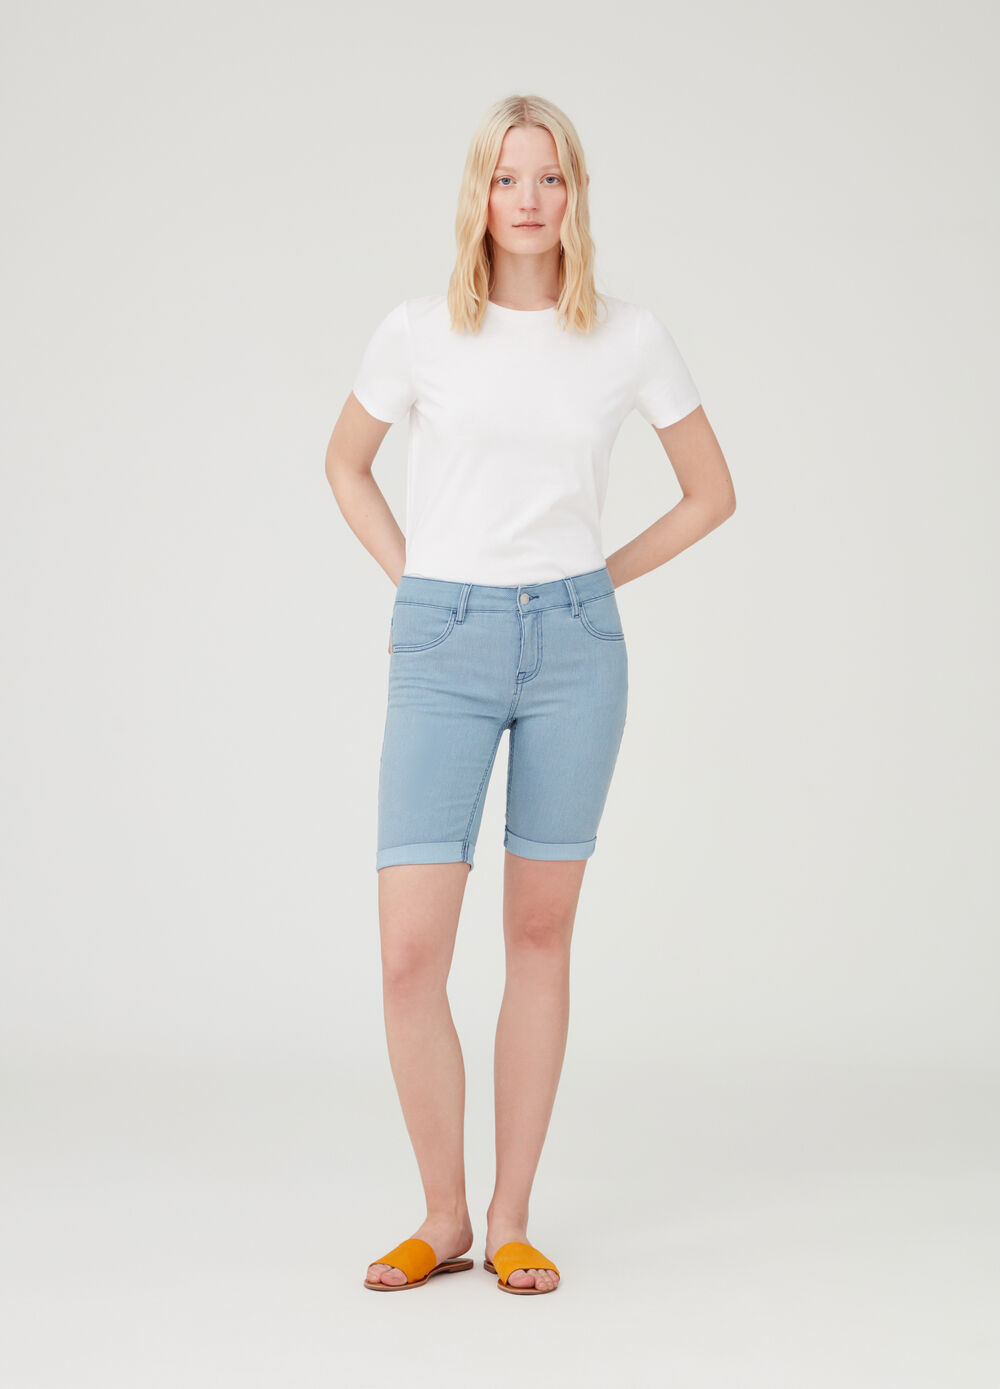 Denim Bermuda shorts with pockets and stripes